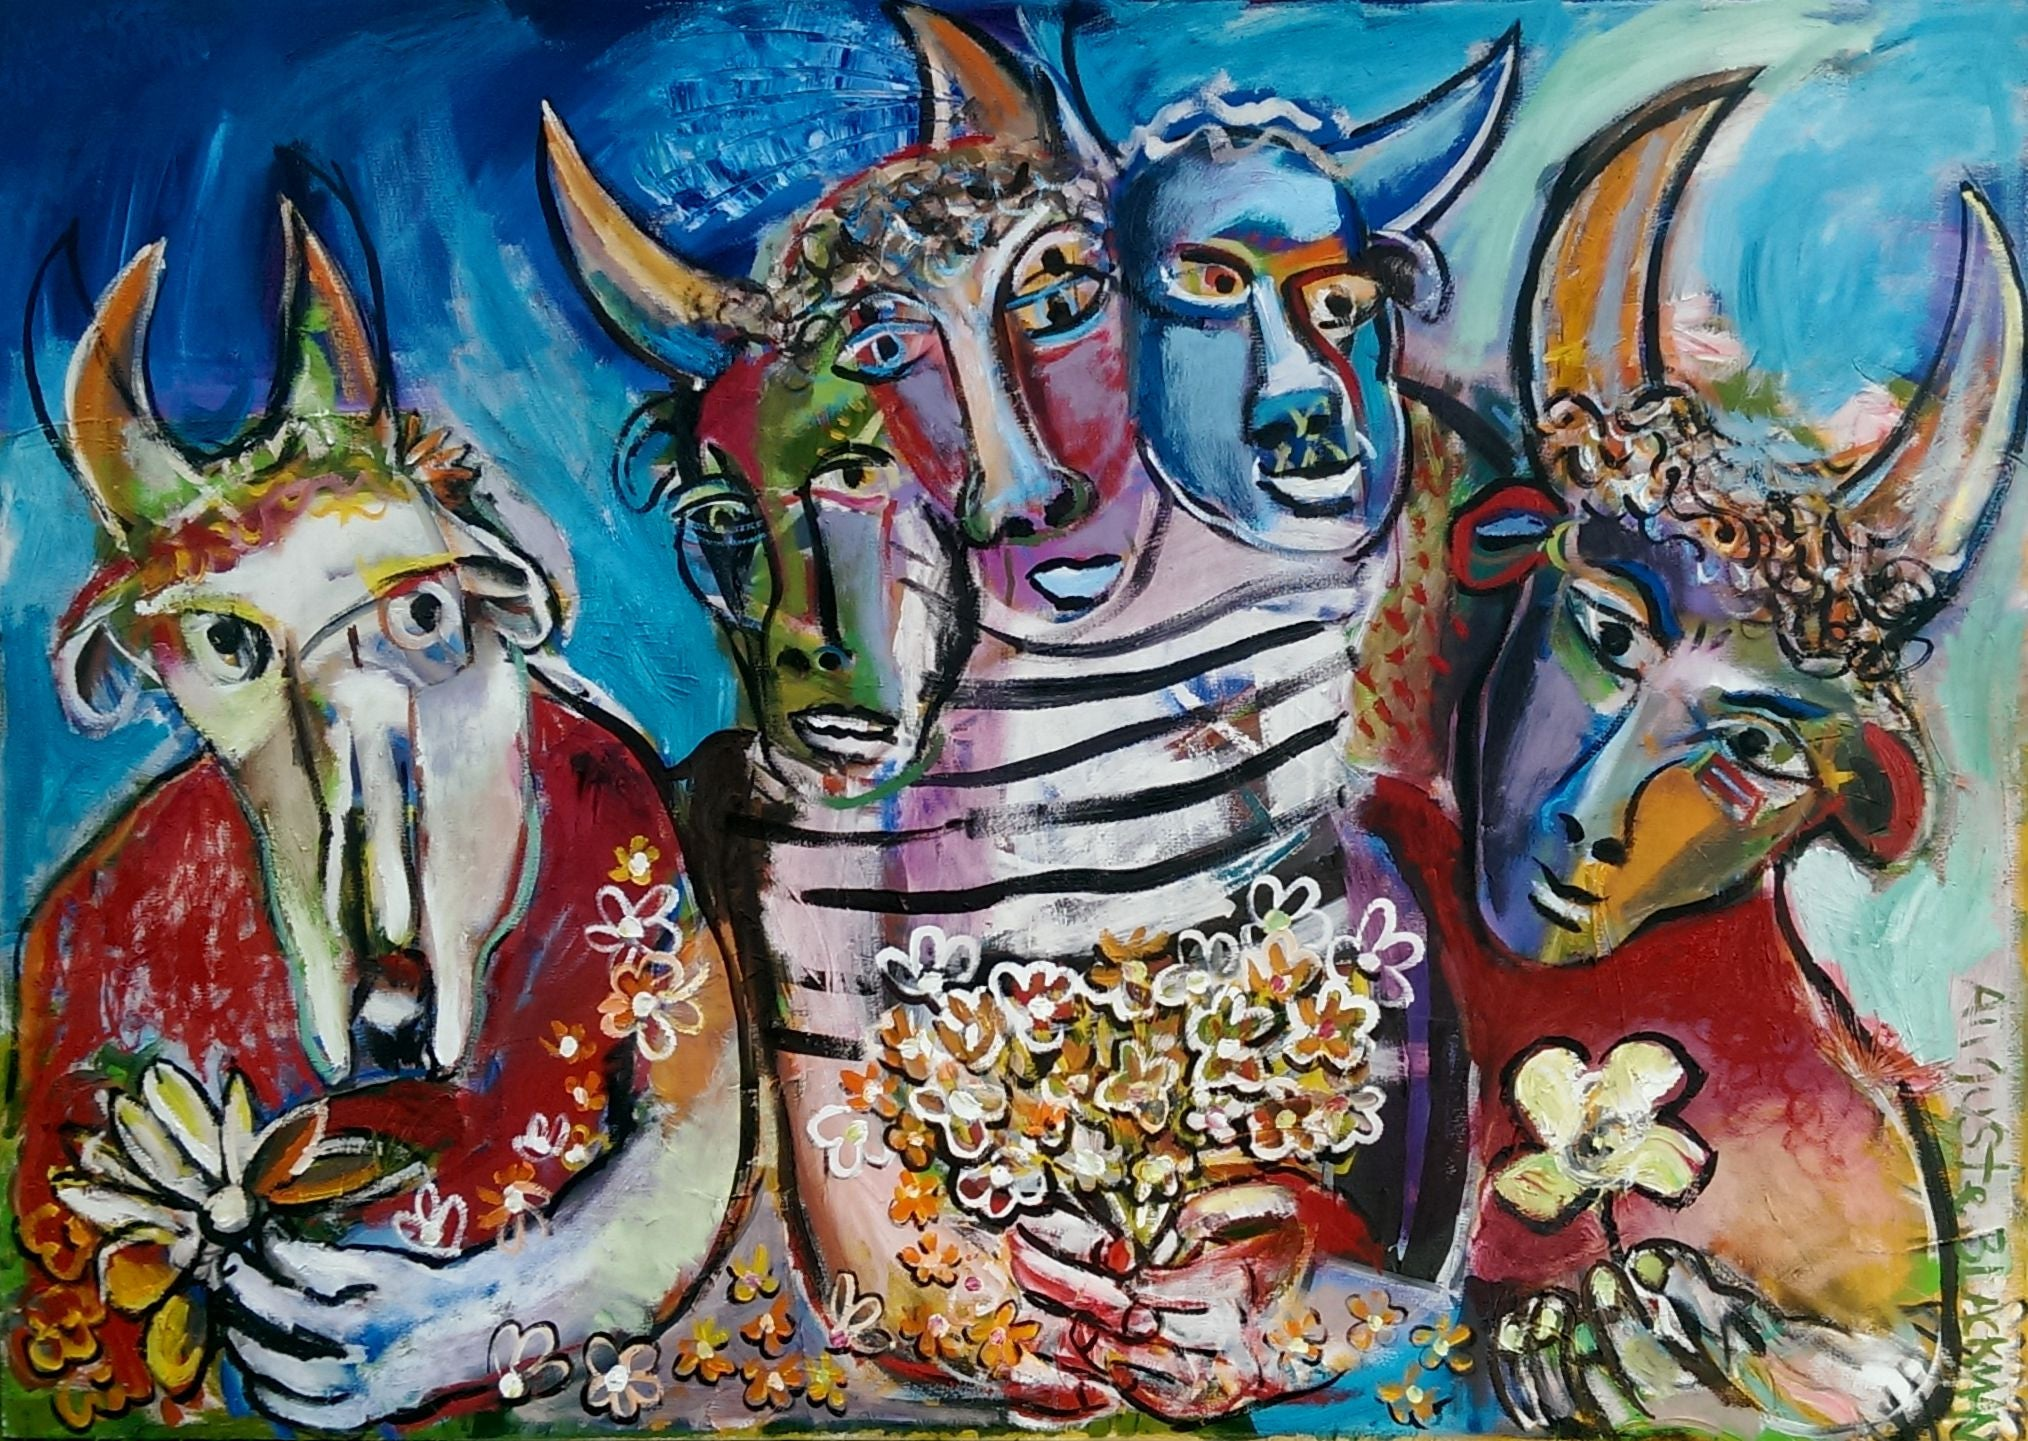 Auguste Blackman 'Picasso's Monsters' - Acrylic on canvas